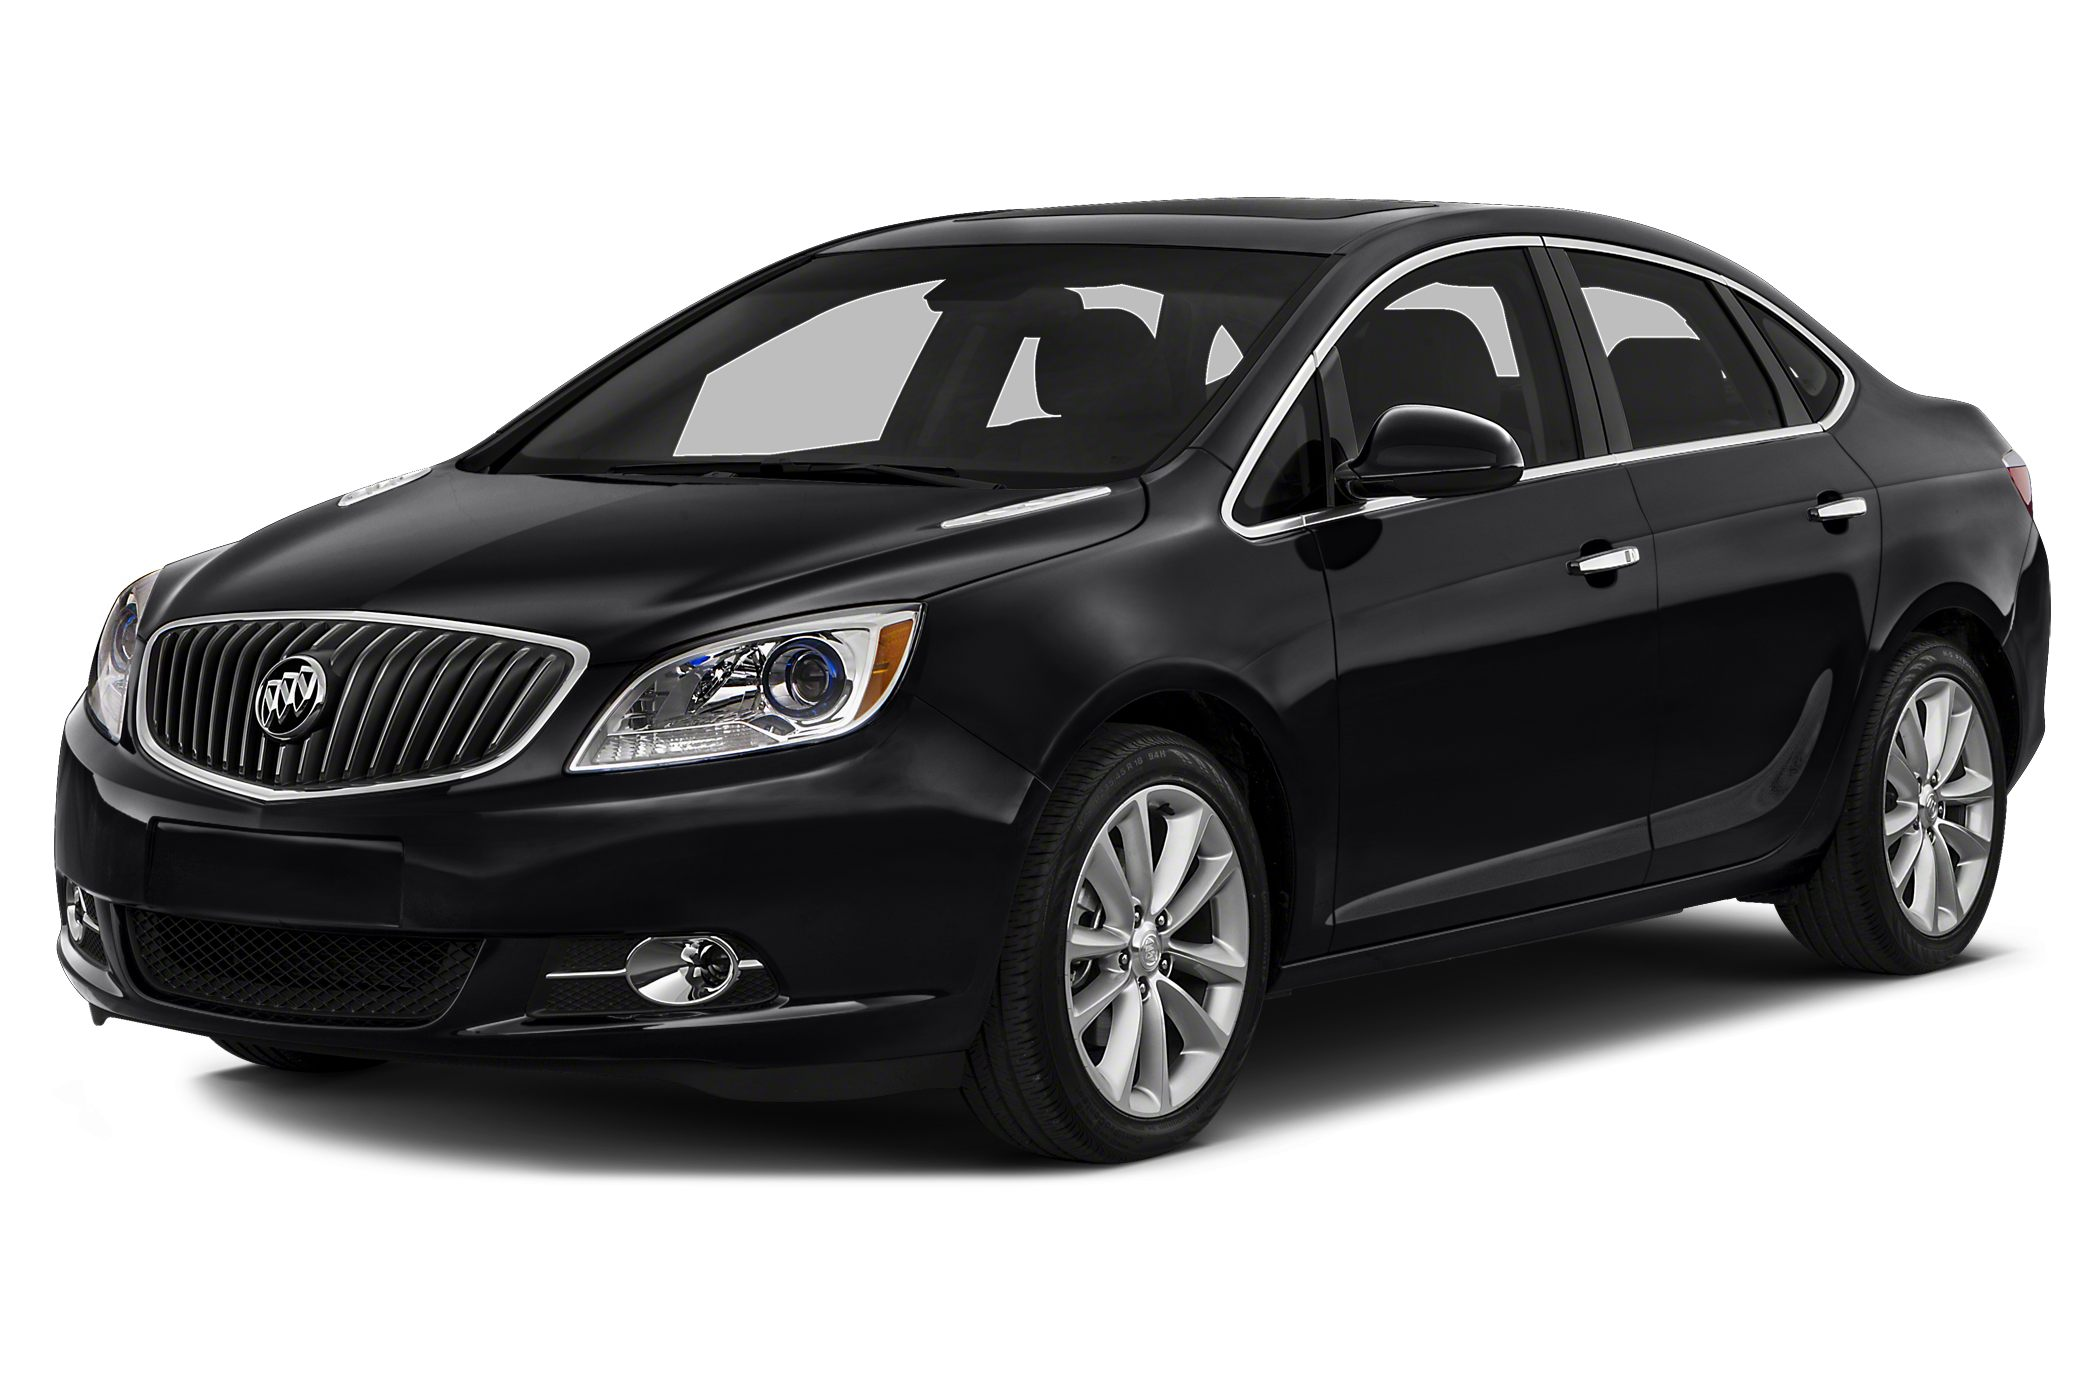 2012 Buick Verano Leather Sedan for sale in Stillwater for $19,900 with 19,239 miles.